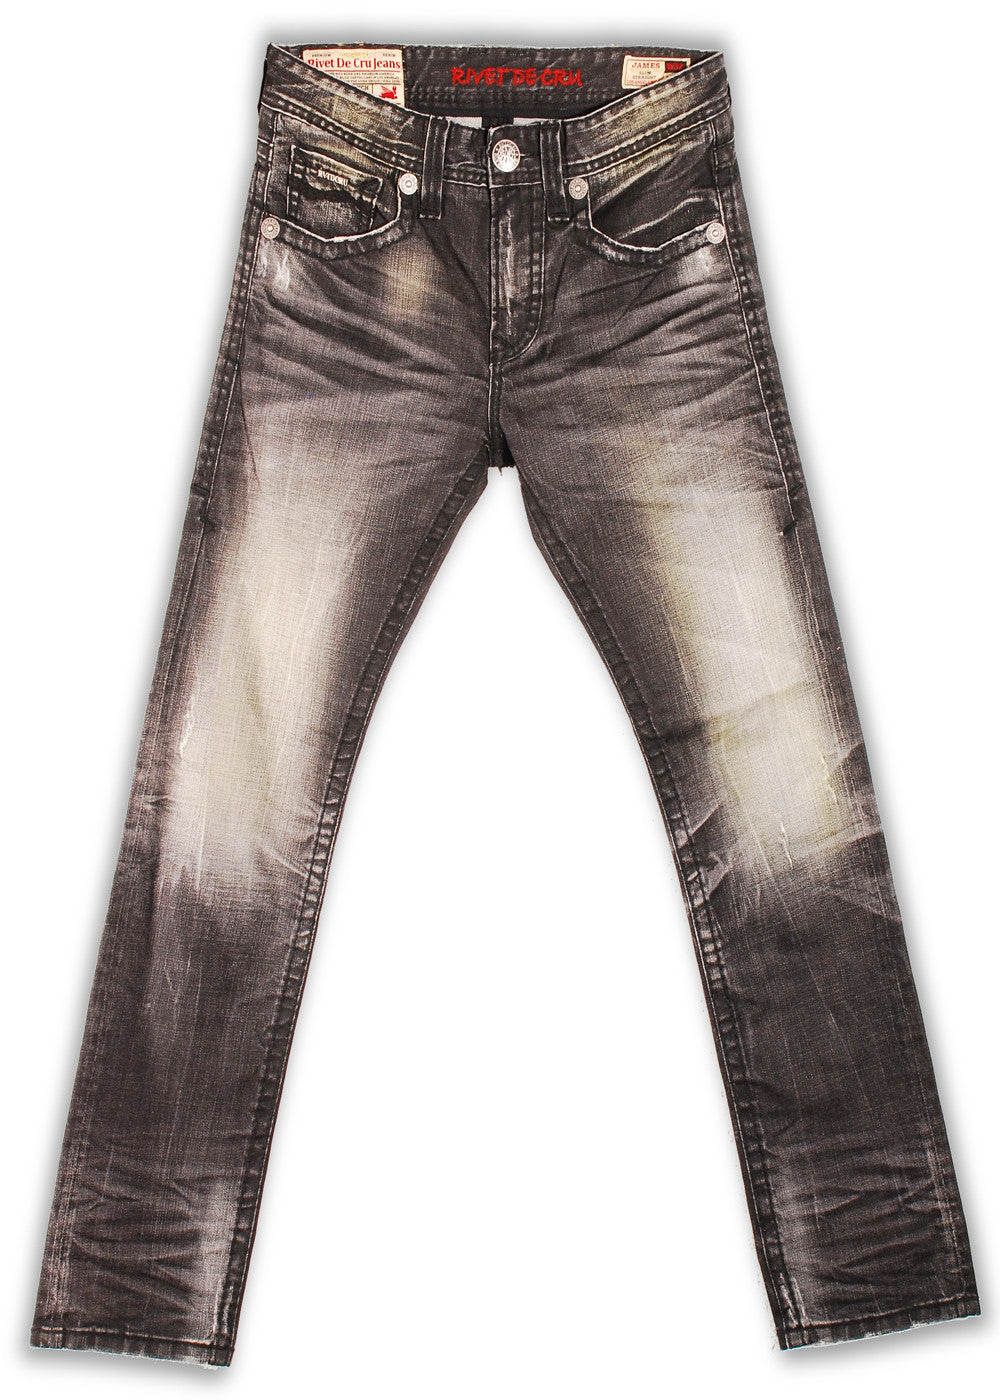 151-143M Tarmac Wash Jean - Rivet De Cru Jeans - Premium Denim - Mens Fashion - Mens Clothing - Mens Jeans - Mens Denim - 1